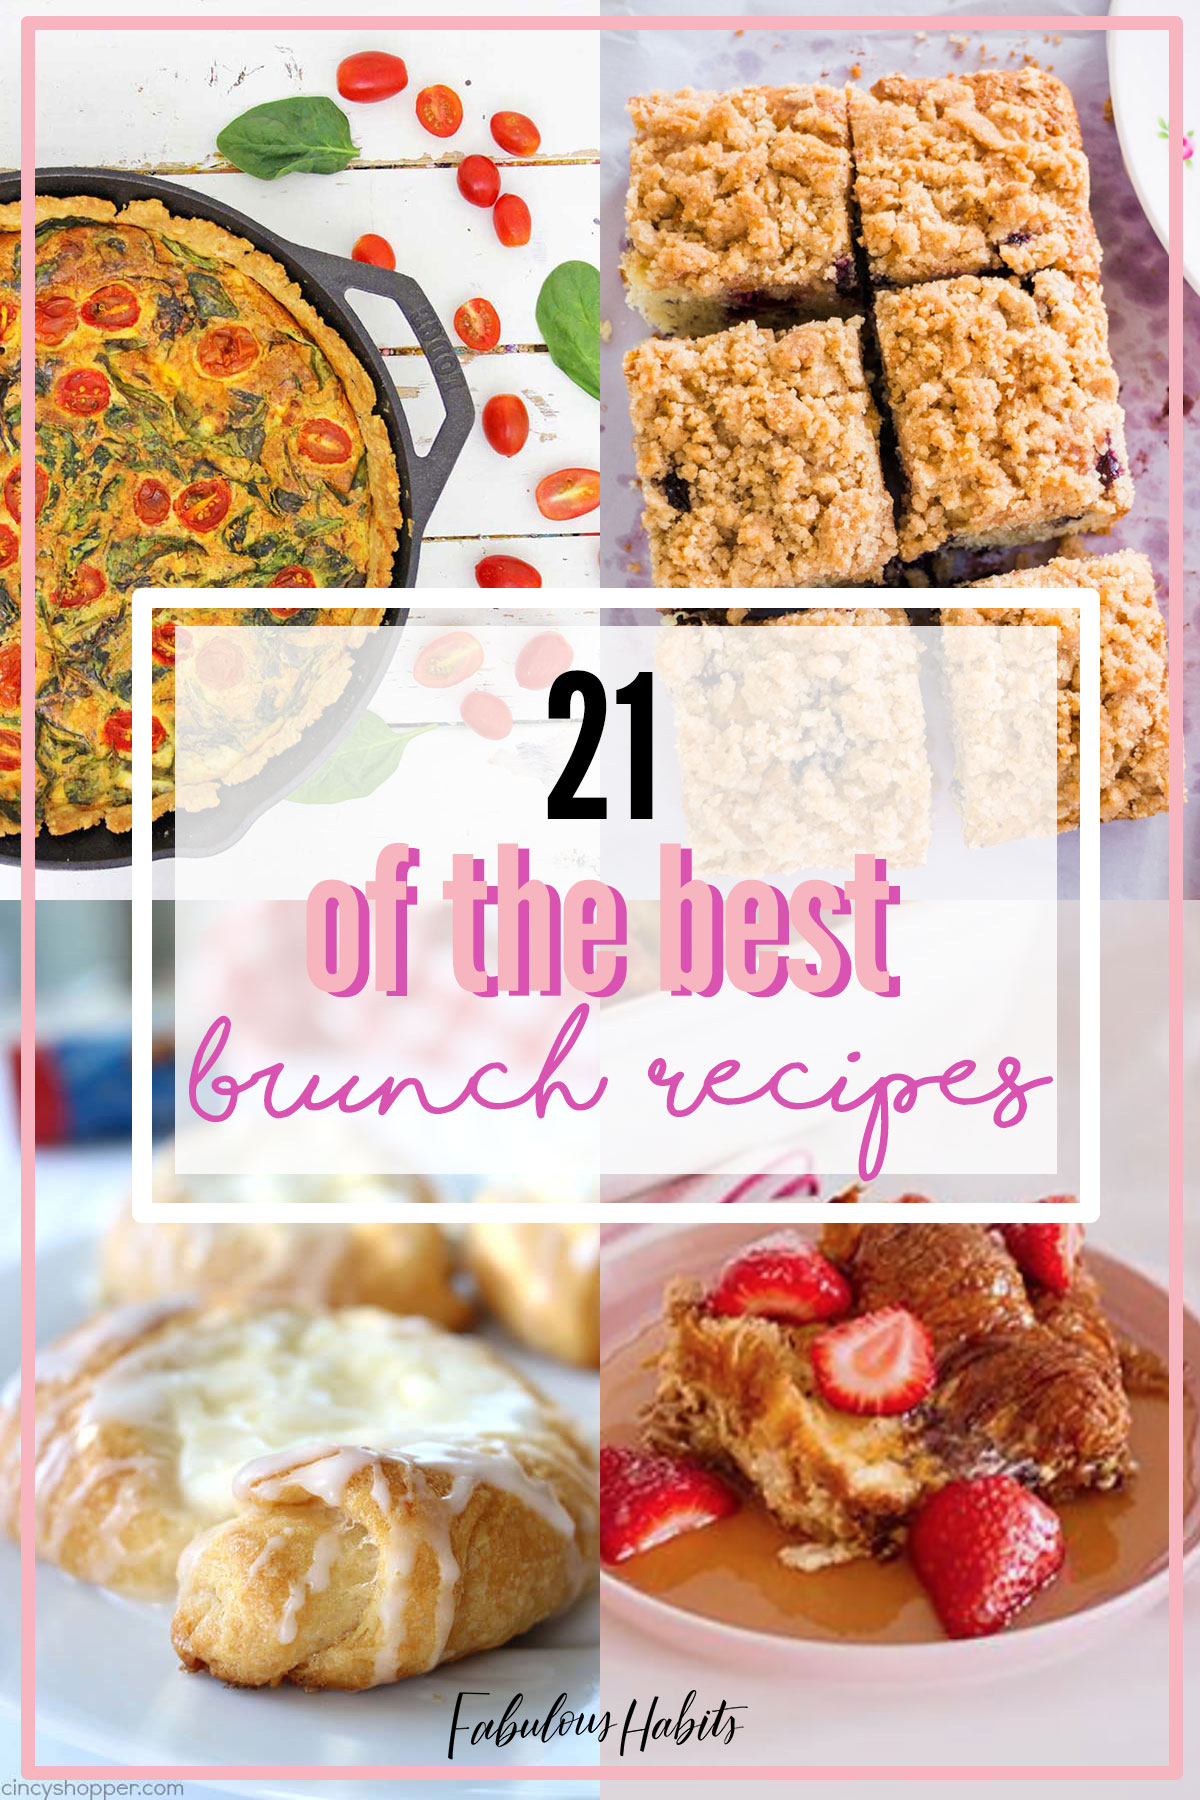 We rounded up 21 brunch ideas to serve up for your Mother's Day celebration this year #brunchrecipes